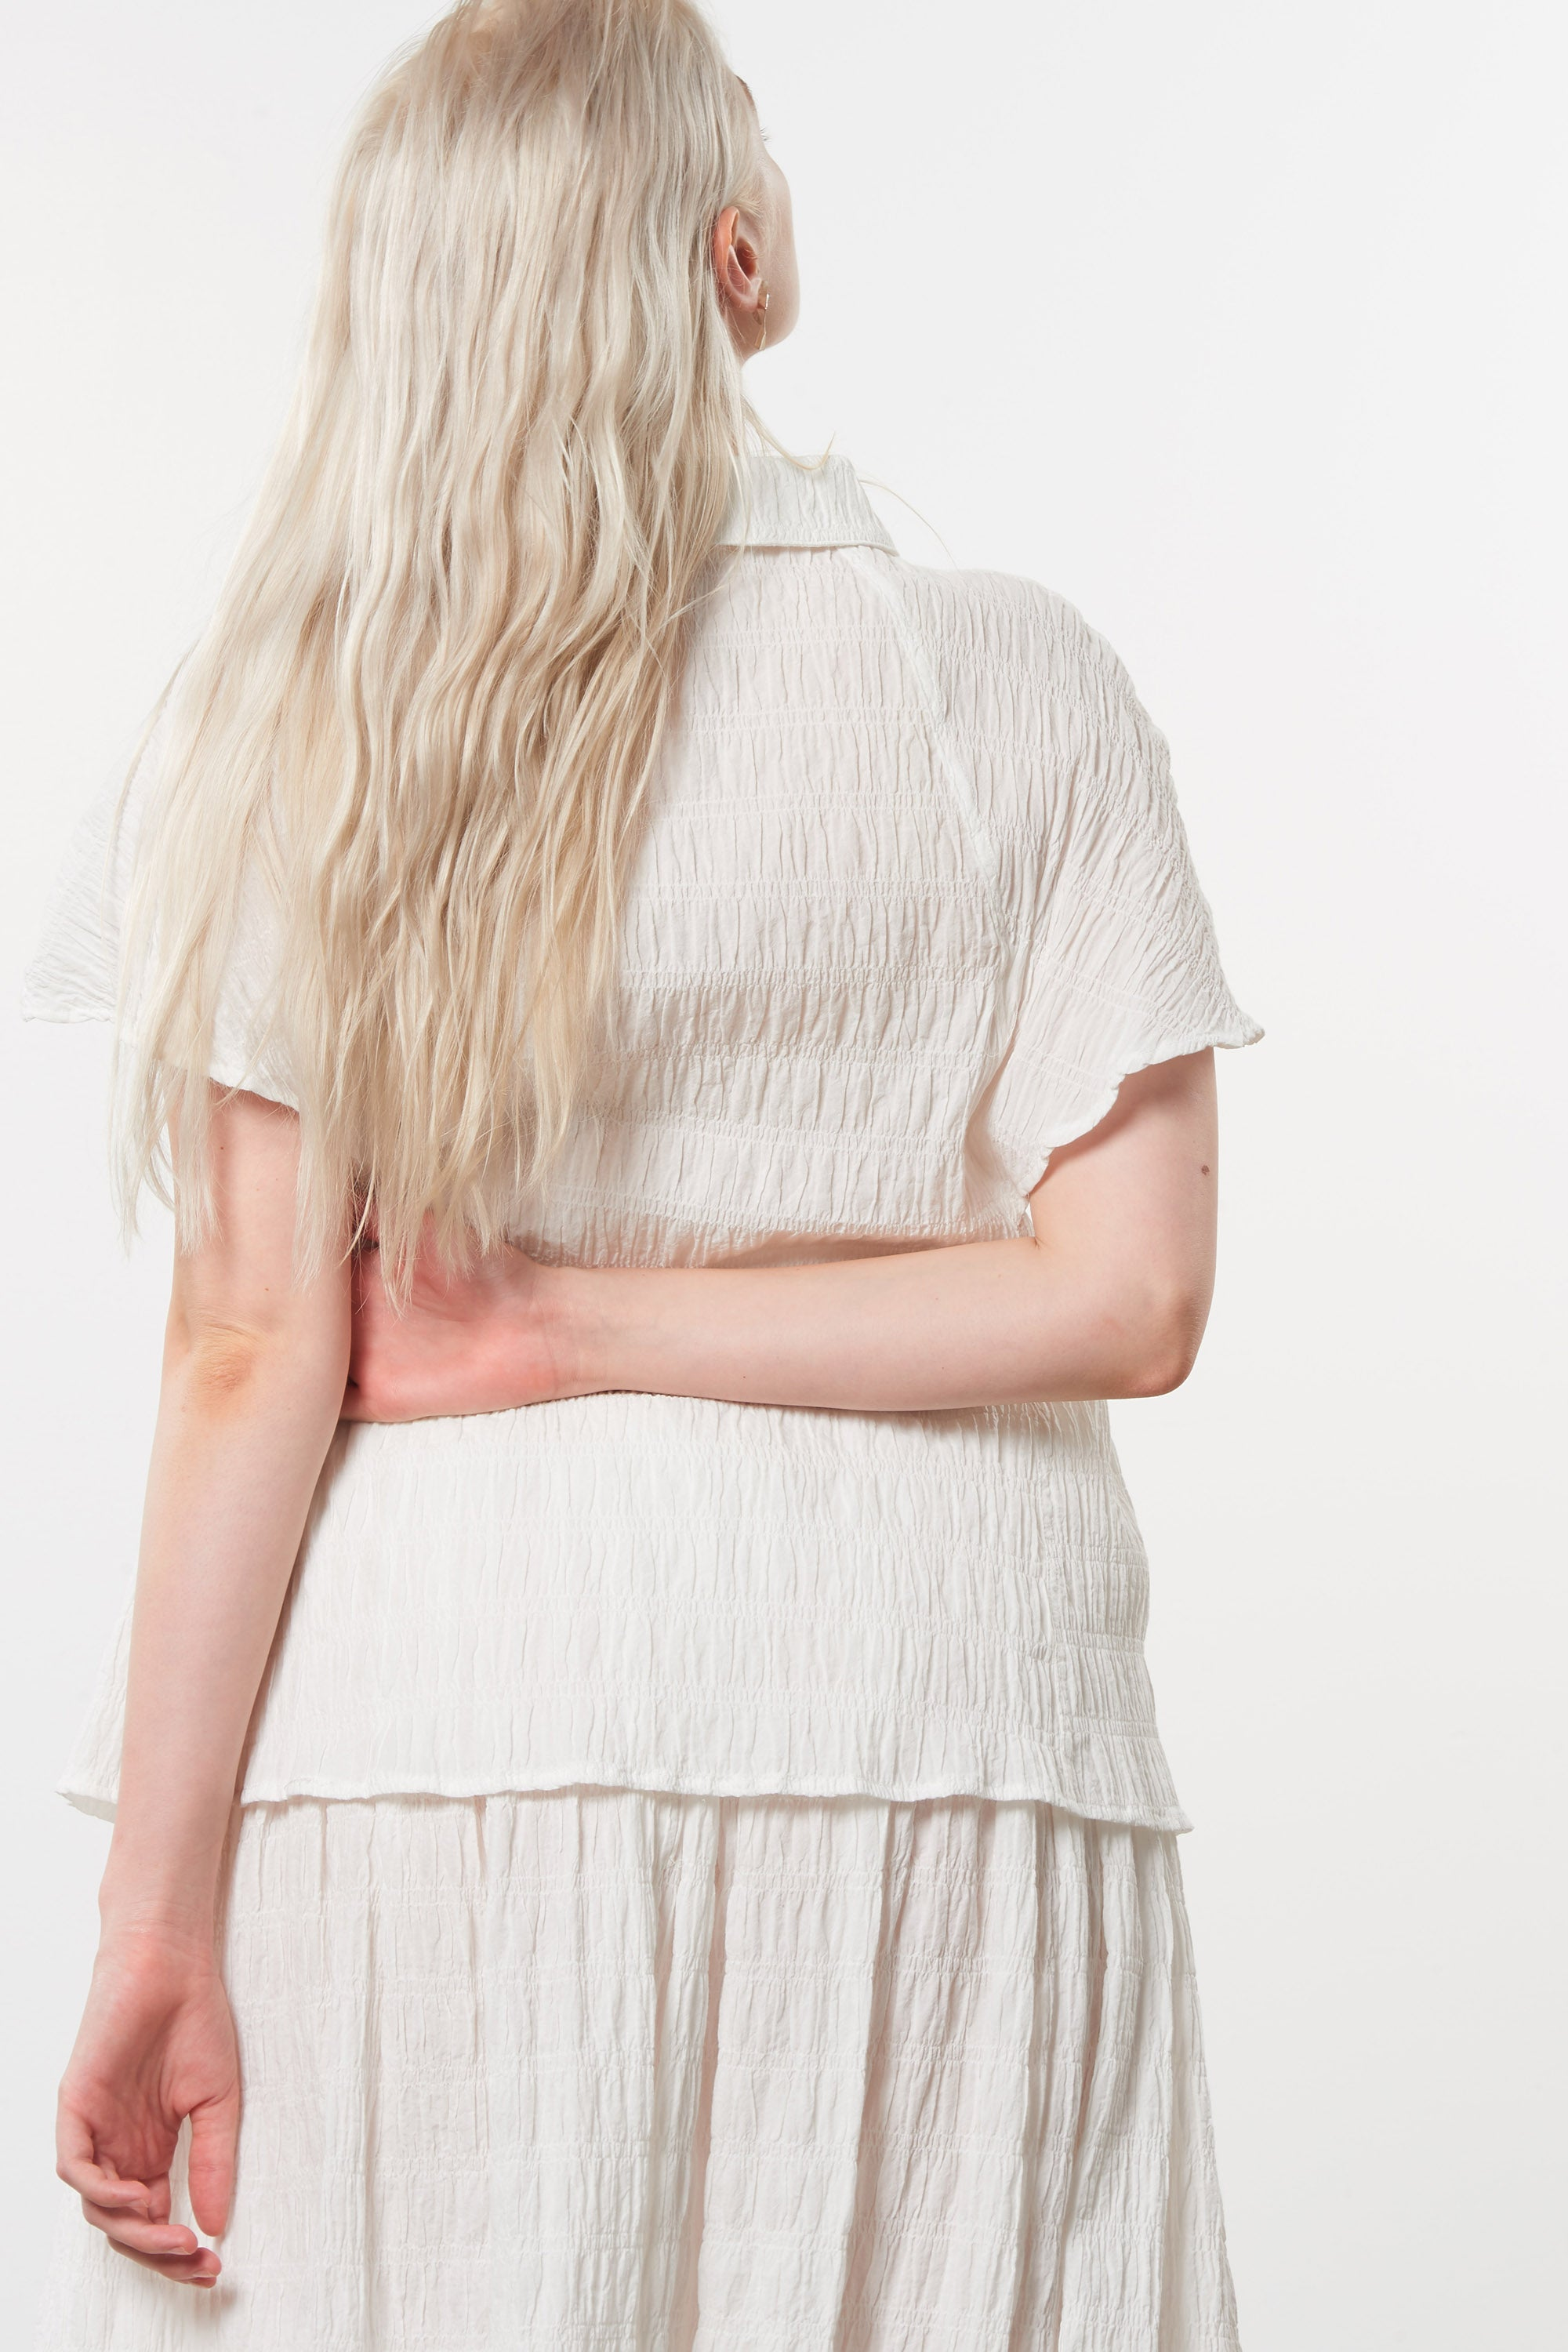 Mara Hoffman Extended White Phebe Top in organic cotton (back detail)